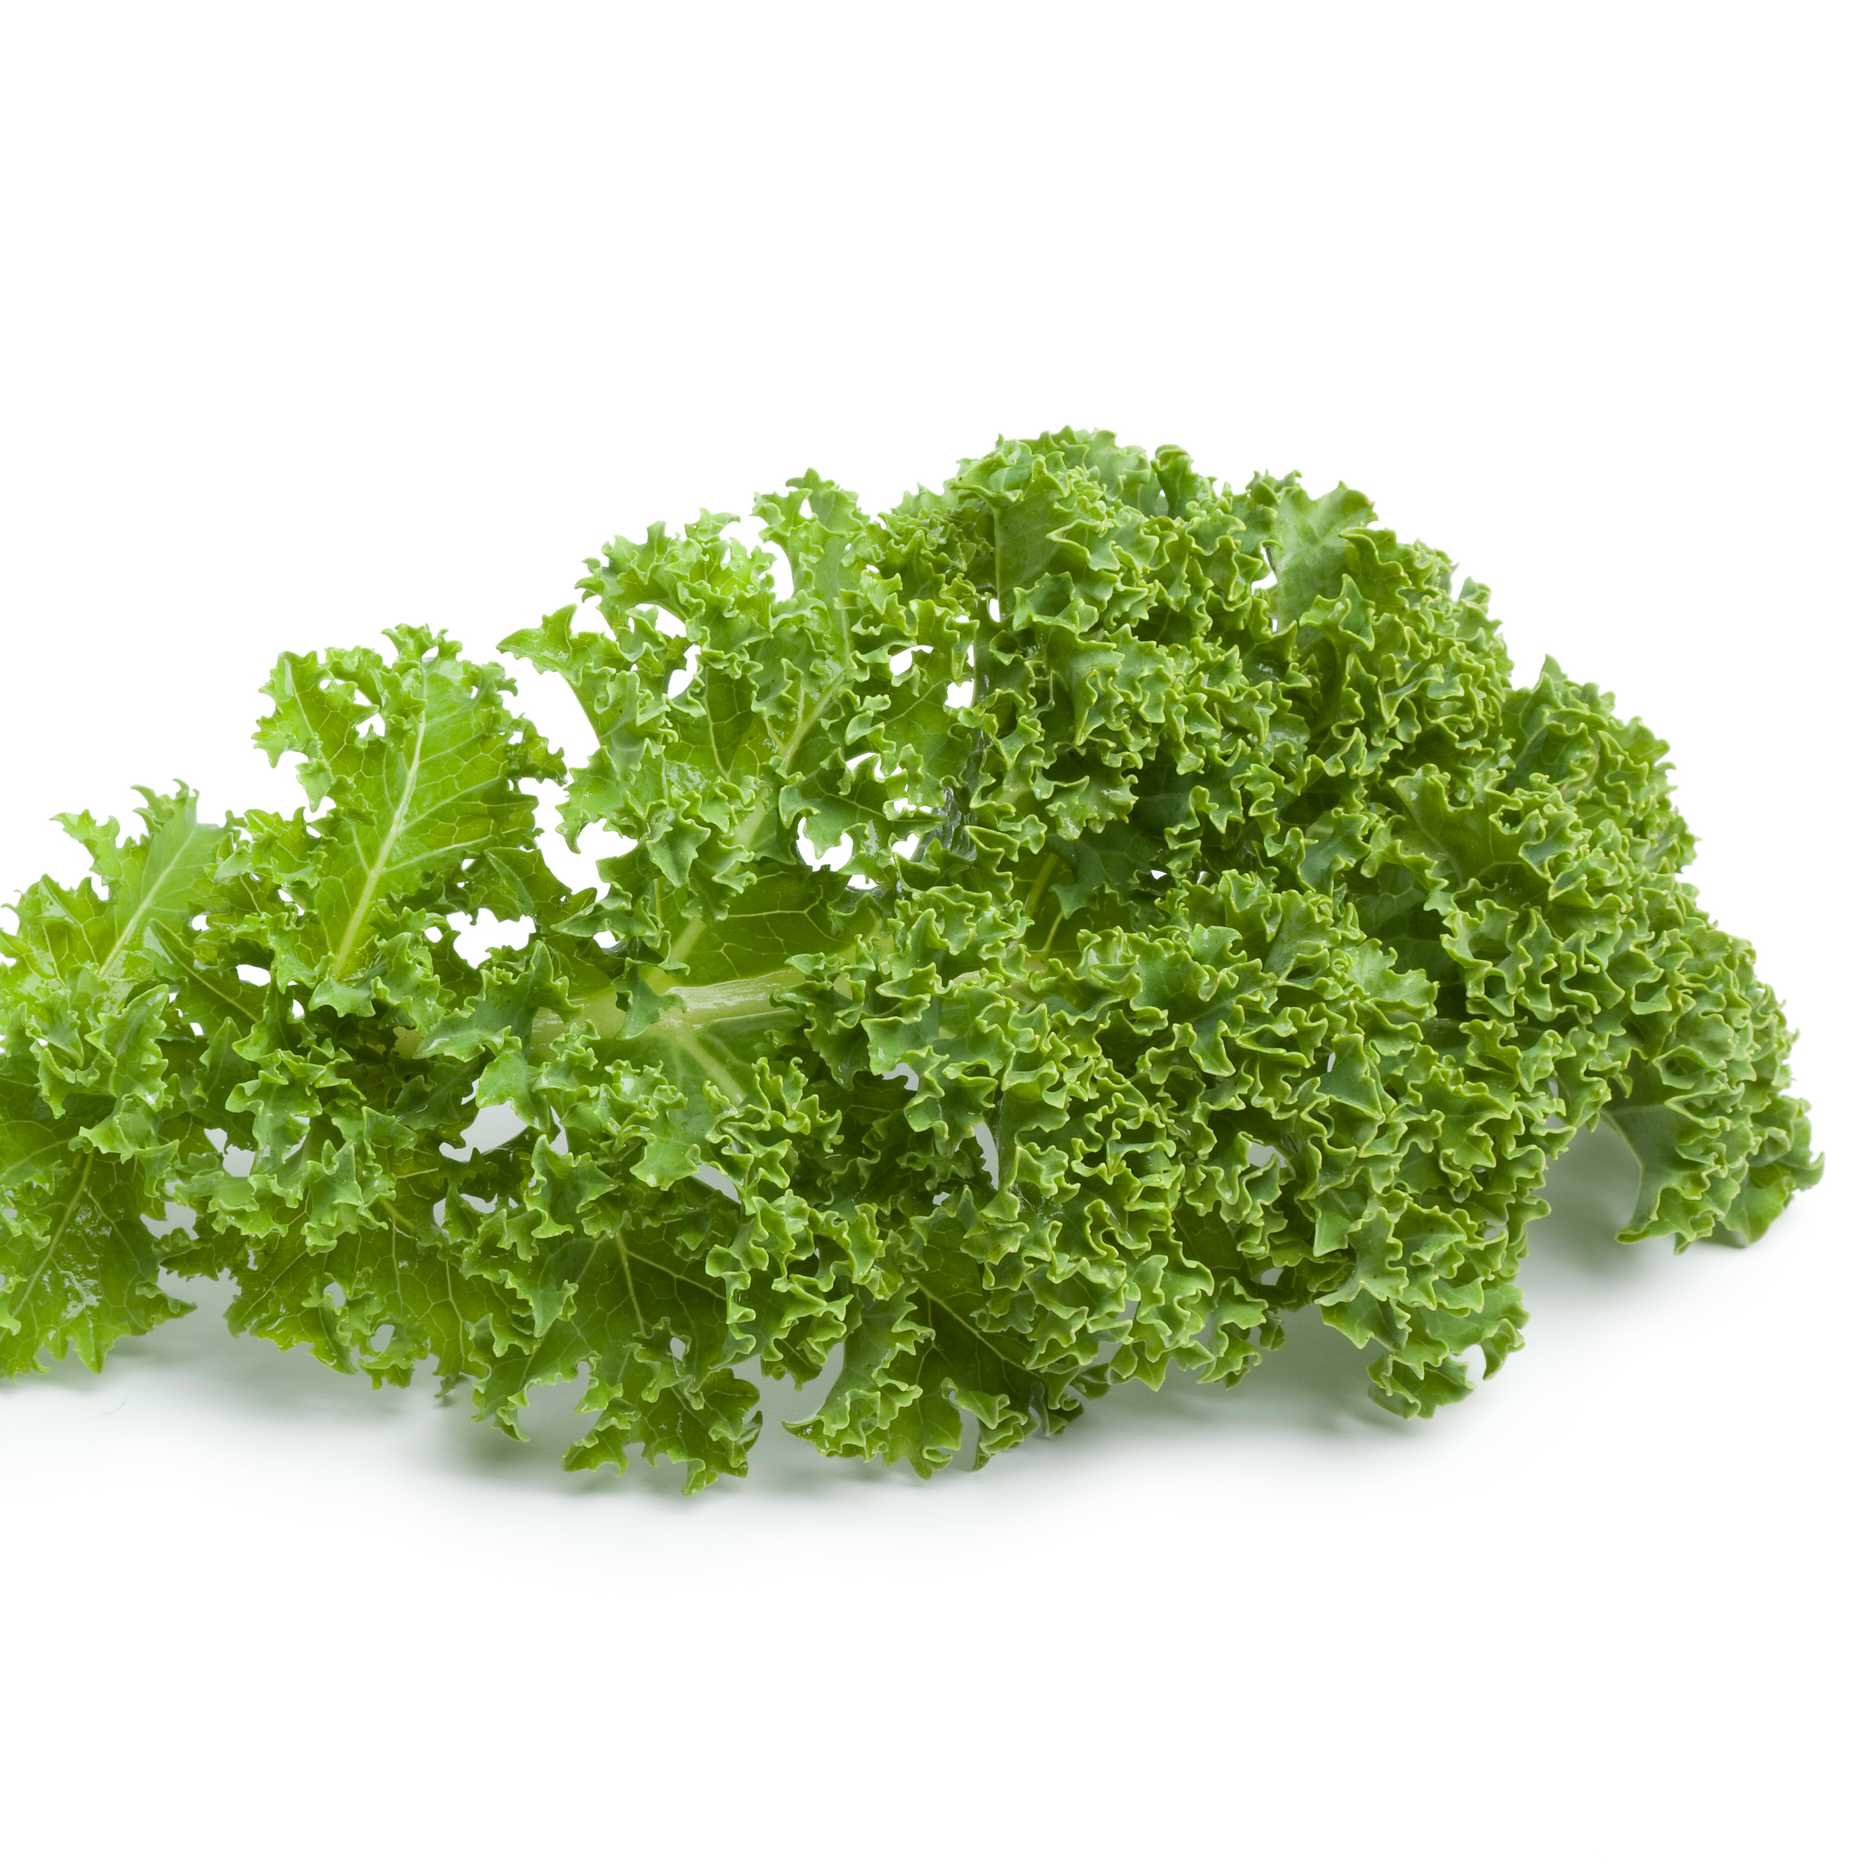 Green kale is loaded with calcium and low in calories. The super-food kale is part of the Sleep Better Diet.